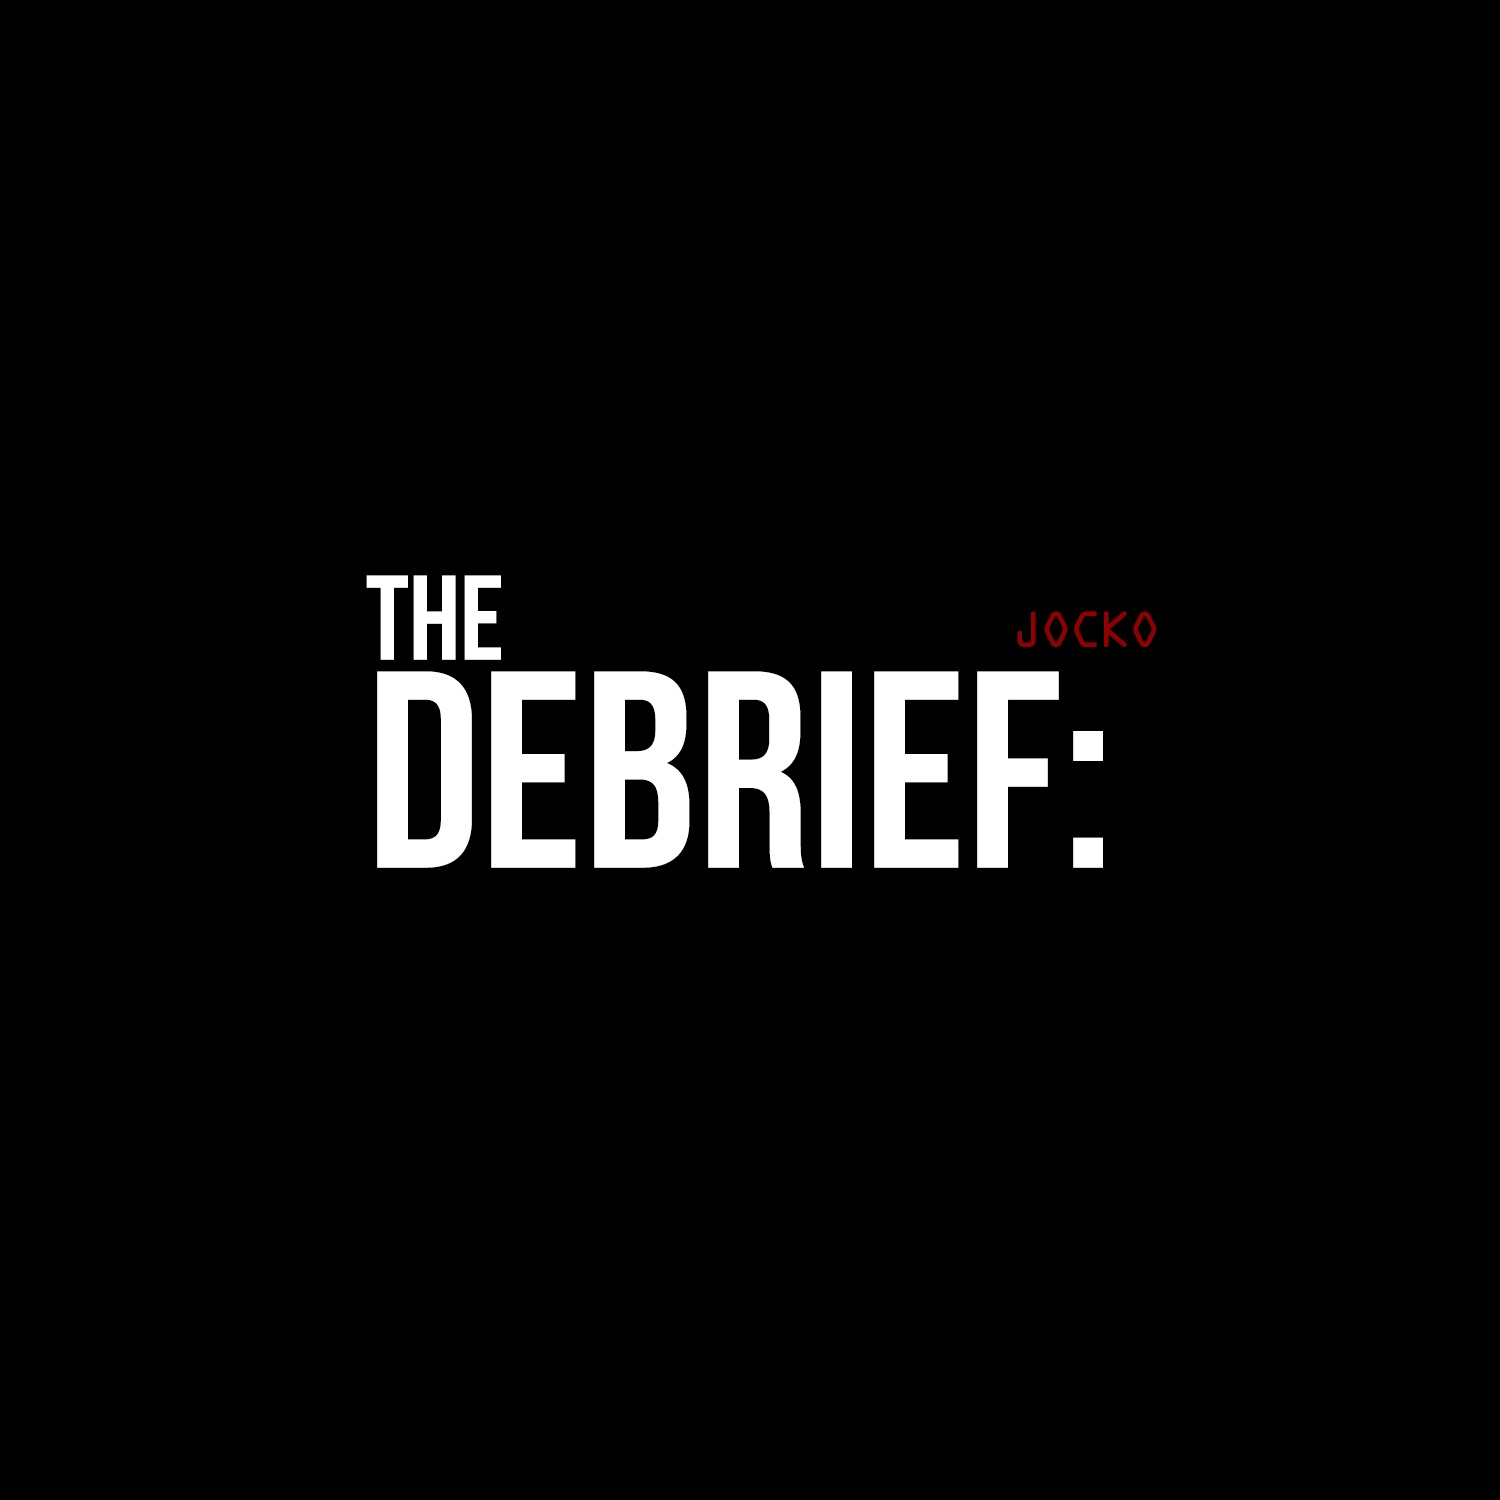 The Debrief w/ Jocko and Dave Berke #12: Find Out Where The Team is Out of Alignment